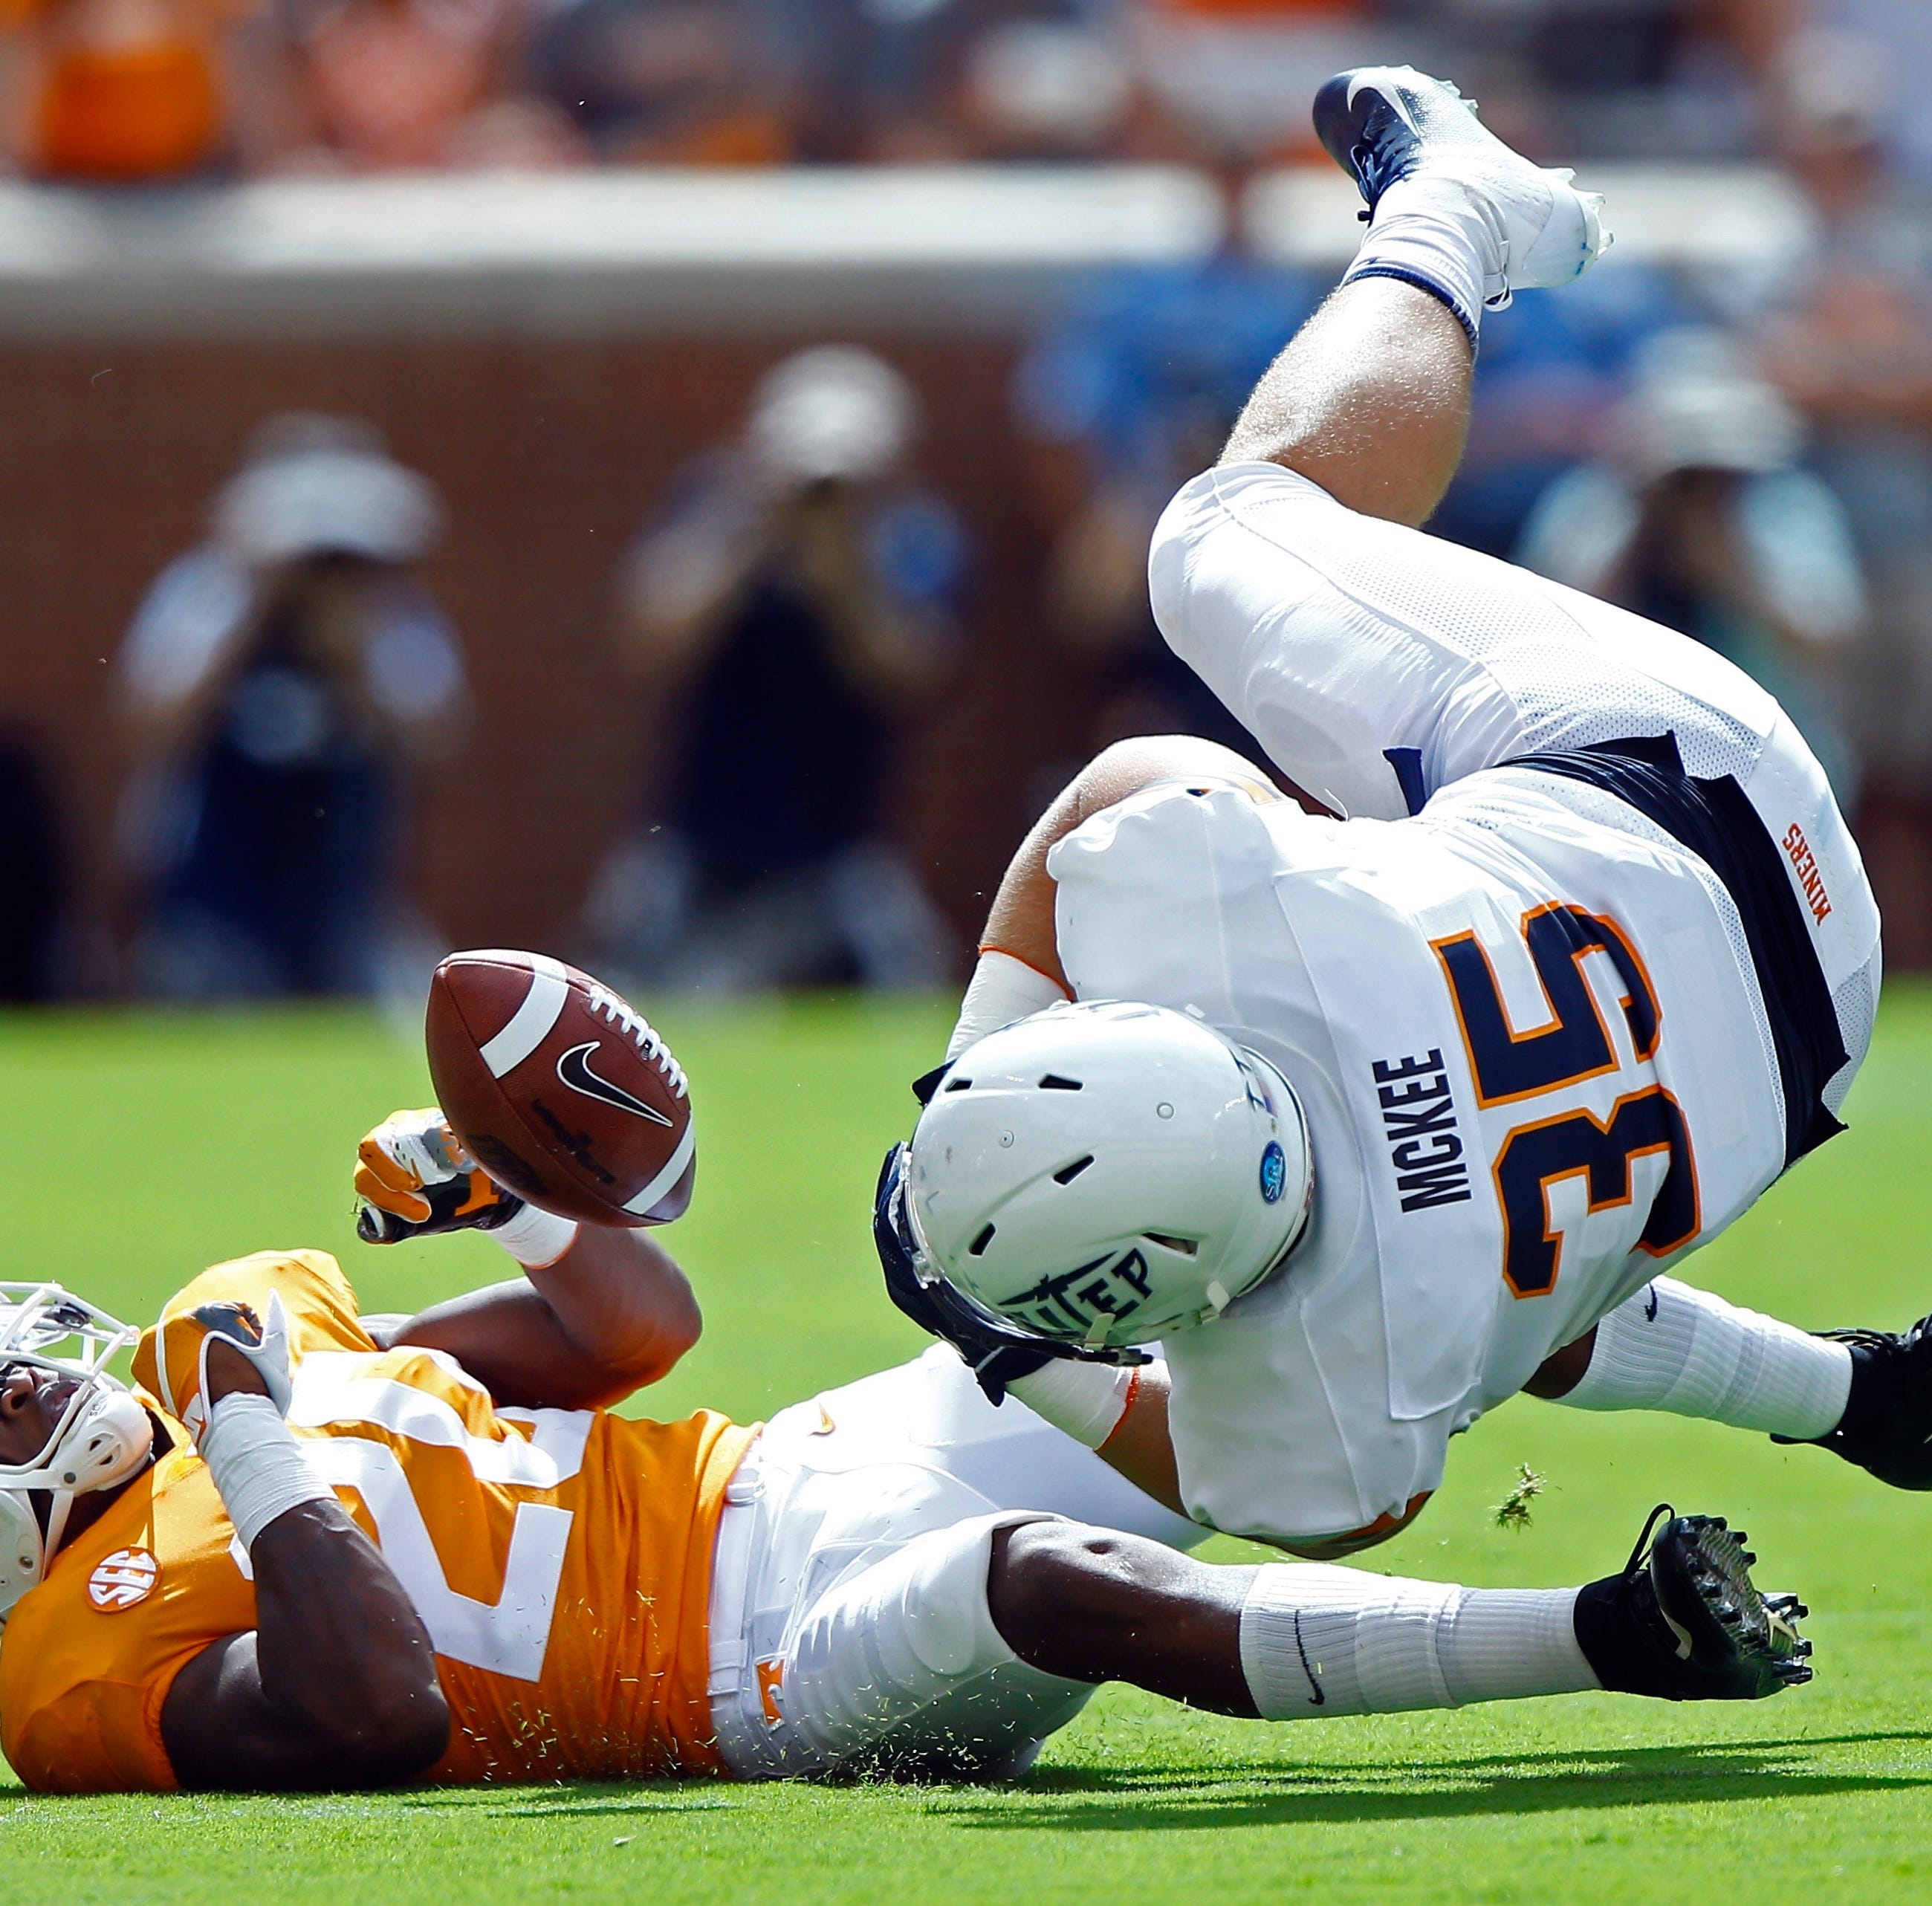 Notes: UTEP's outstanding kicking game continues; Nik Needham sets record